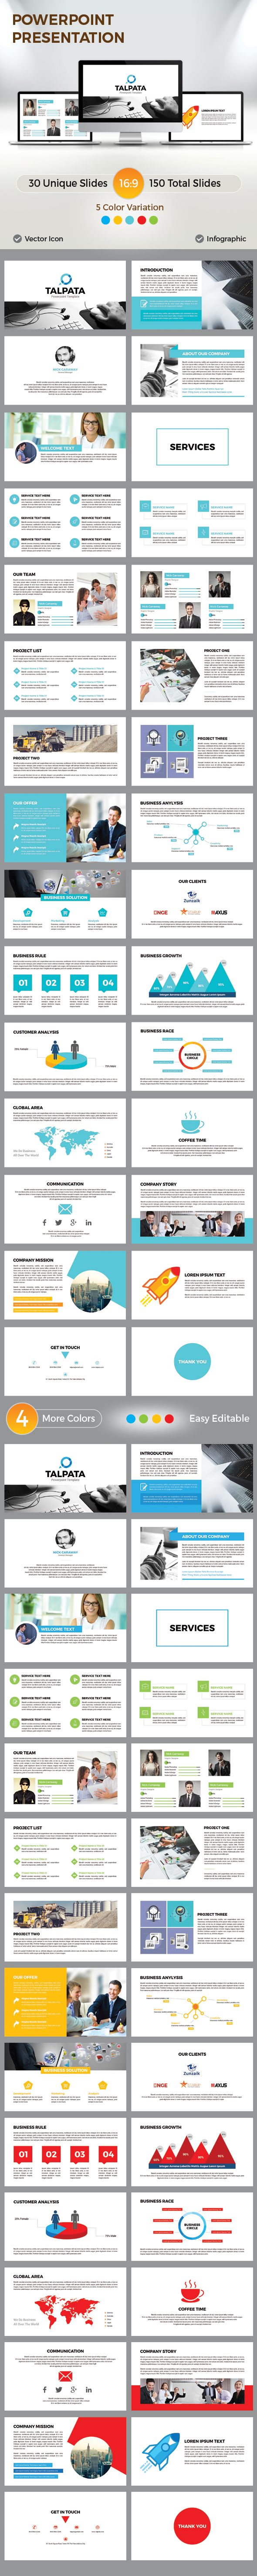 Business PowerPoint Presentation  #corporate #infographic • Download ➝ https://graphicriver.net/item/business-powerpoint-presentation/18413257?ref=pxcr